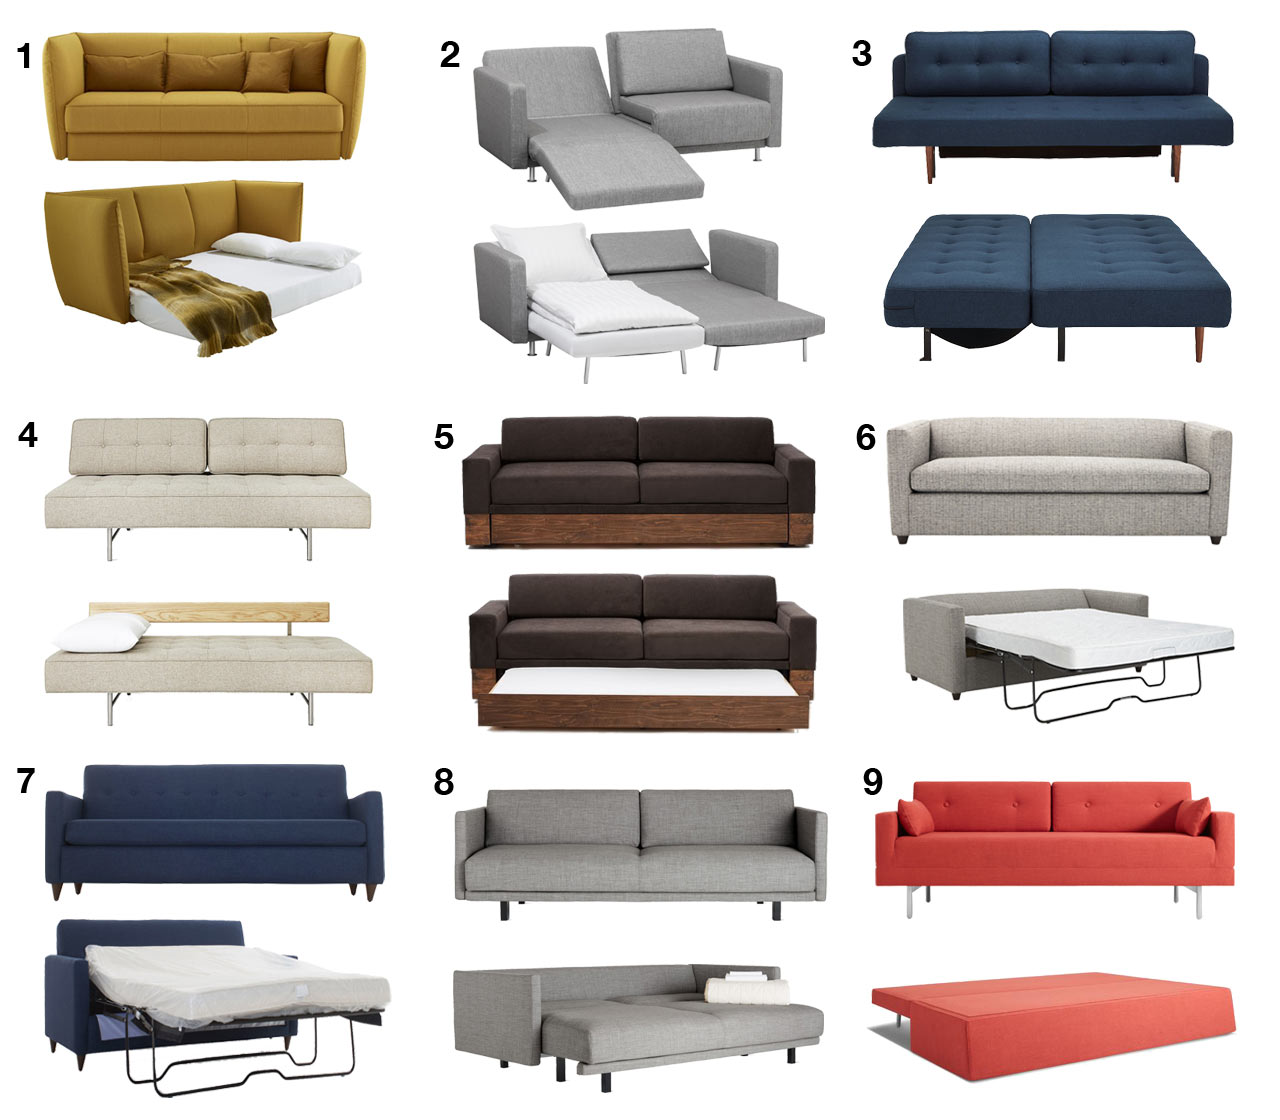 Modern Sofa Beds and Sleeper Sofas Your Guests Won't Hate